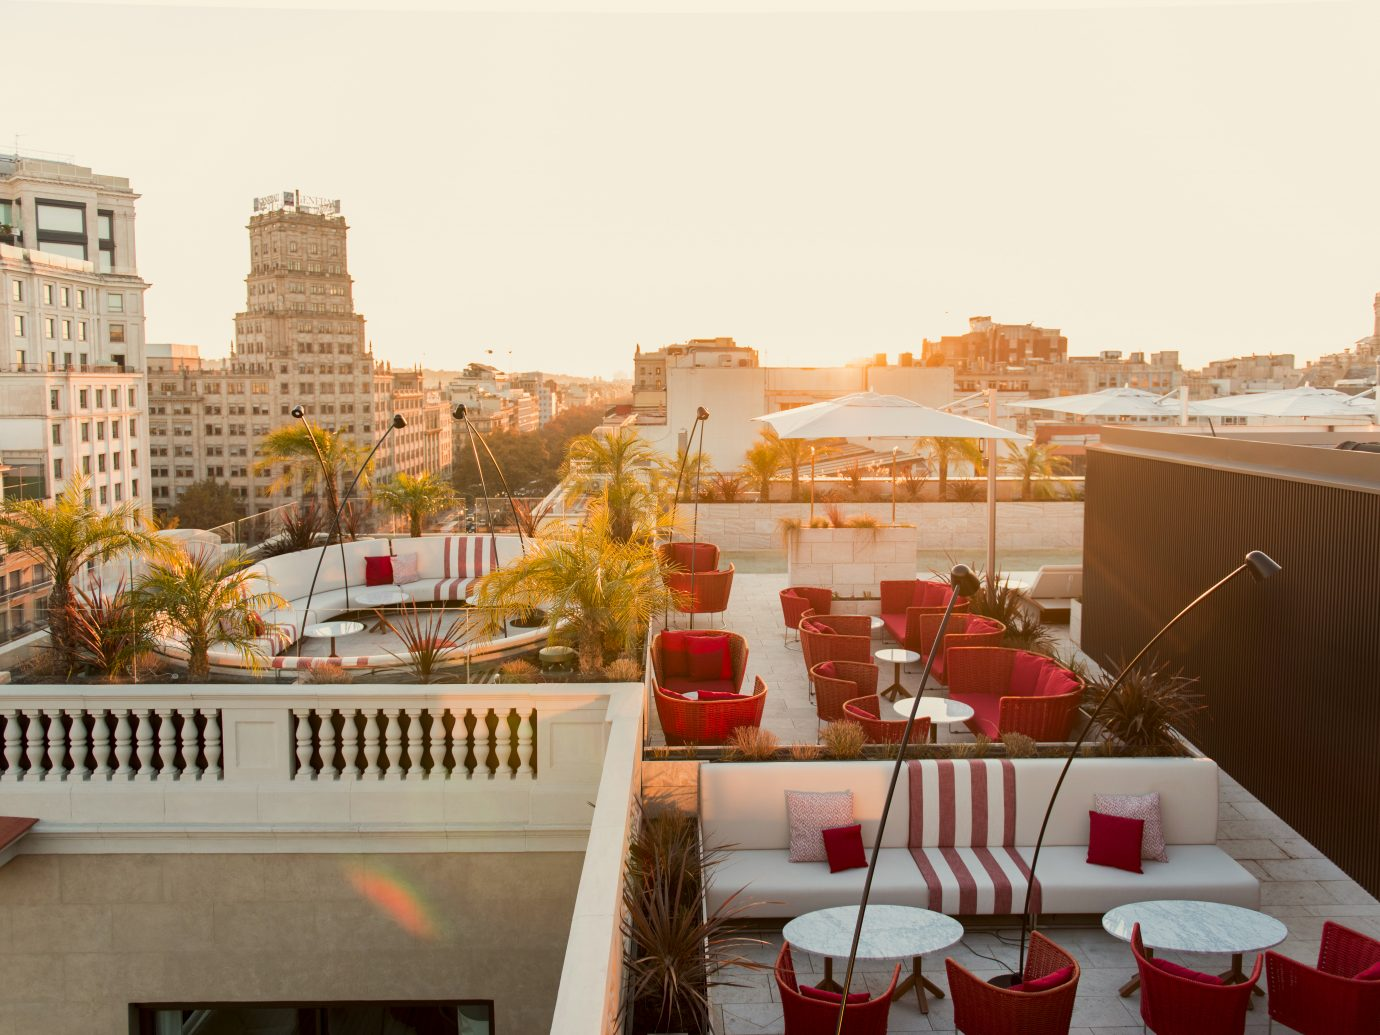 Azimuth, Pool and Rooftop Bar, Almanac Hotel, Barcelona